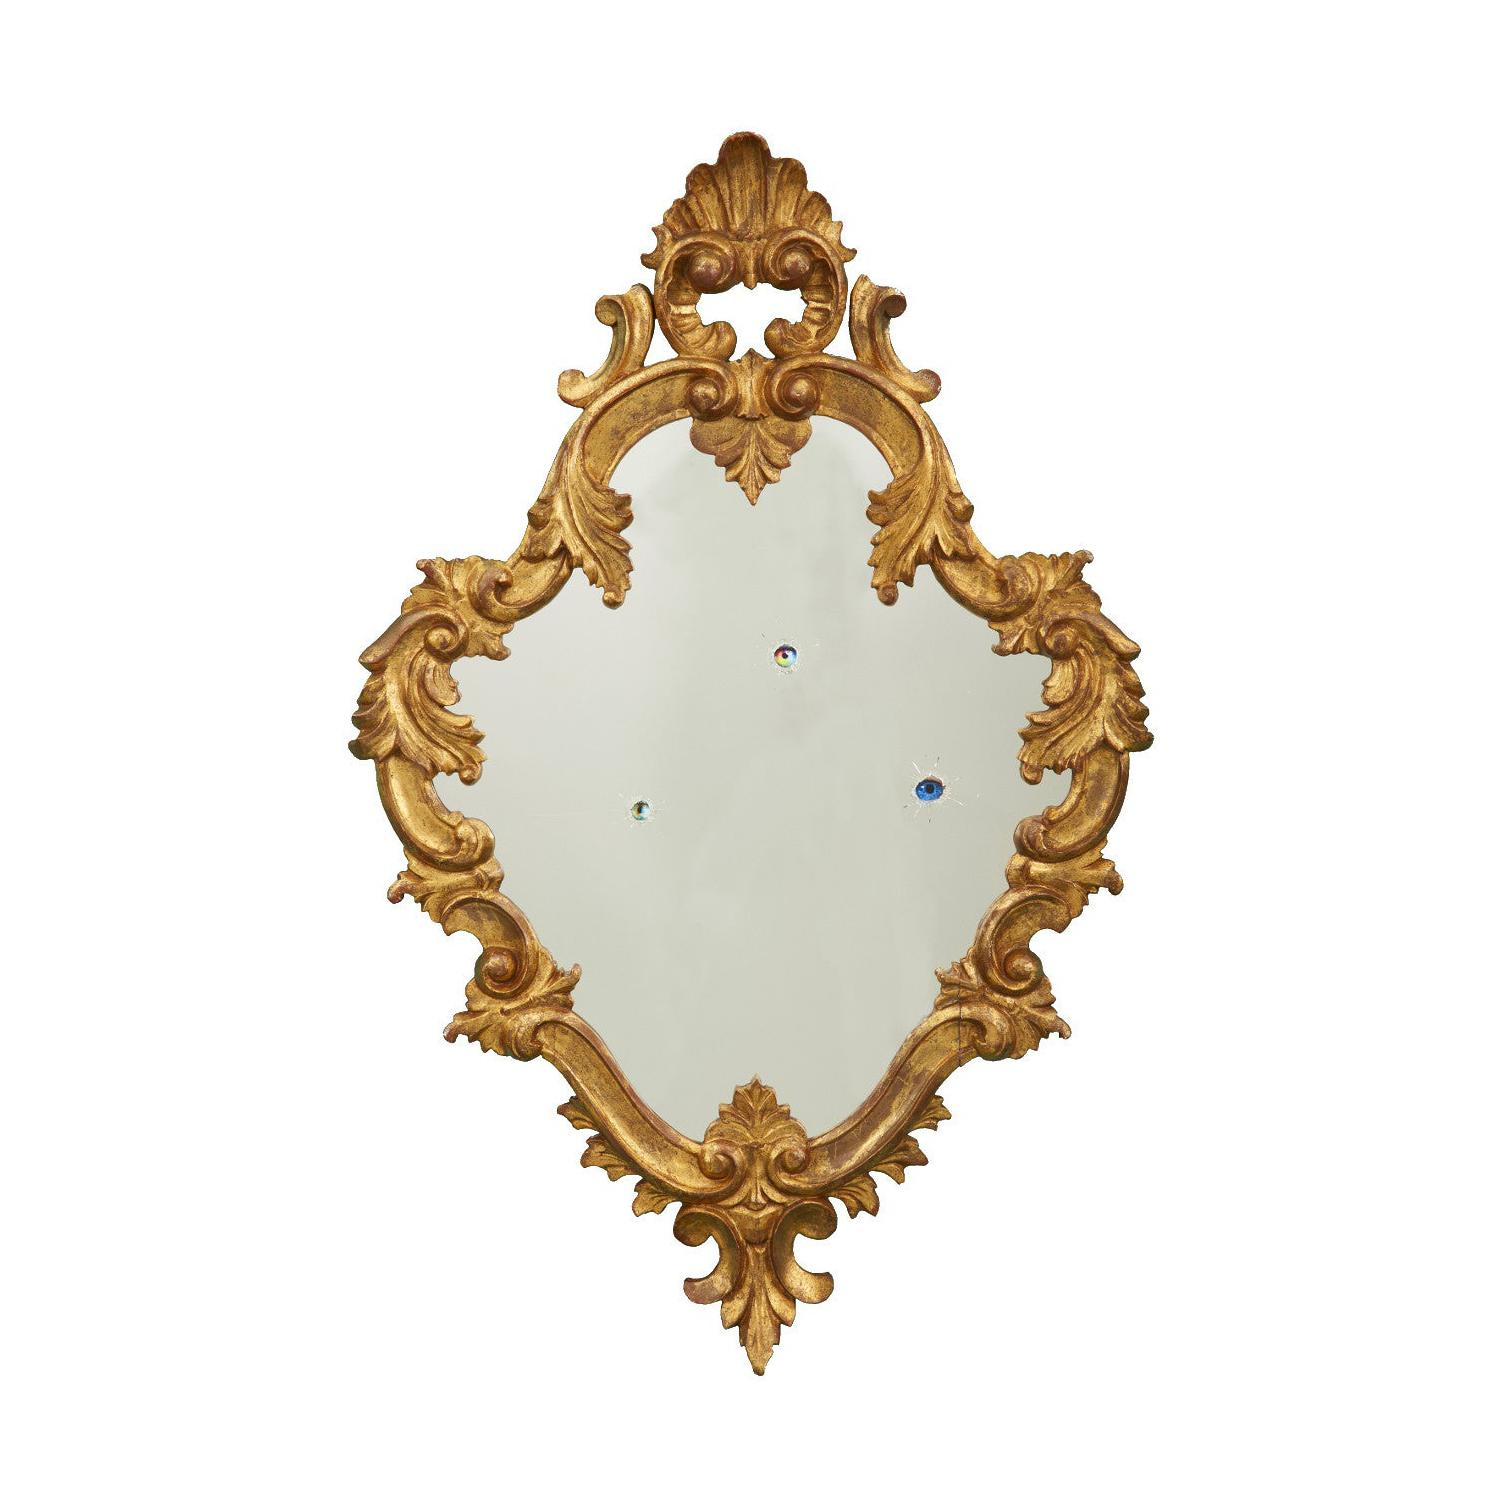 21st Century Gilded Wall Mirror with Holes and Eyes by Giampiero Romanò